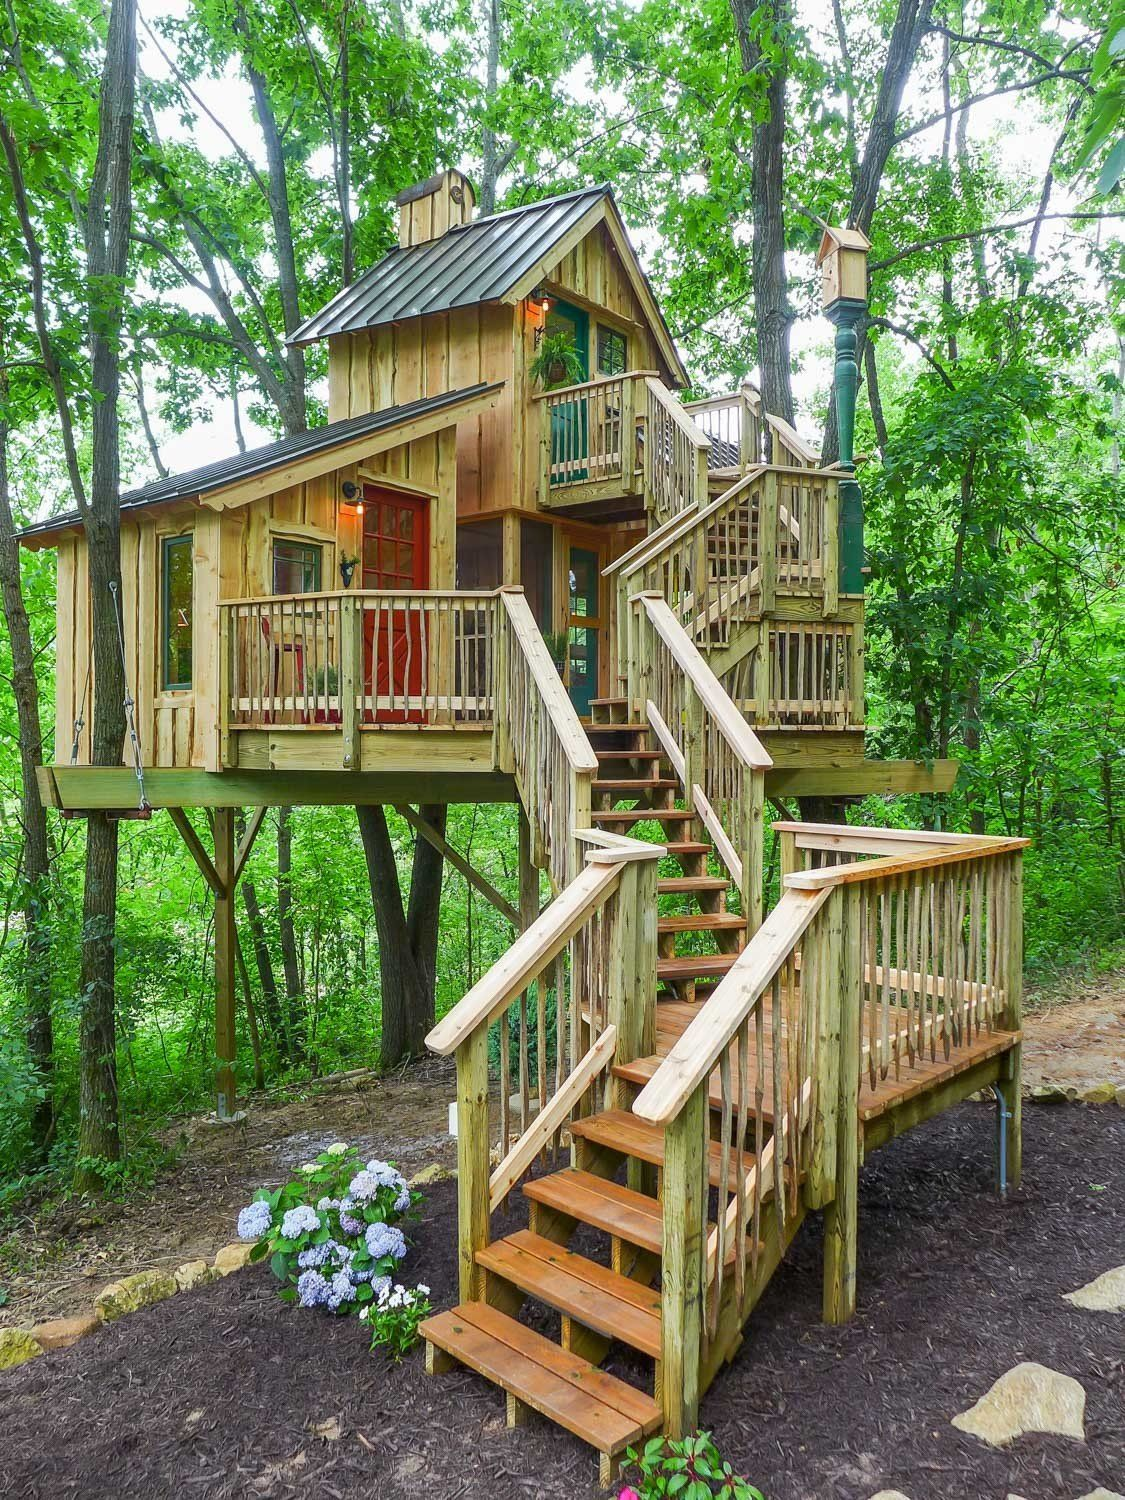 How Tree House Master Pete Nelson Built An Empire In The Woods